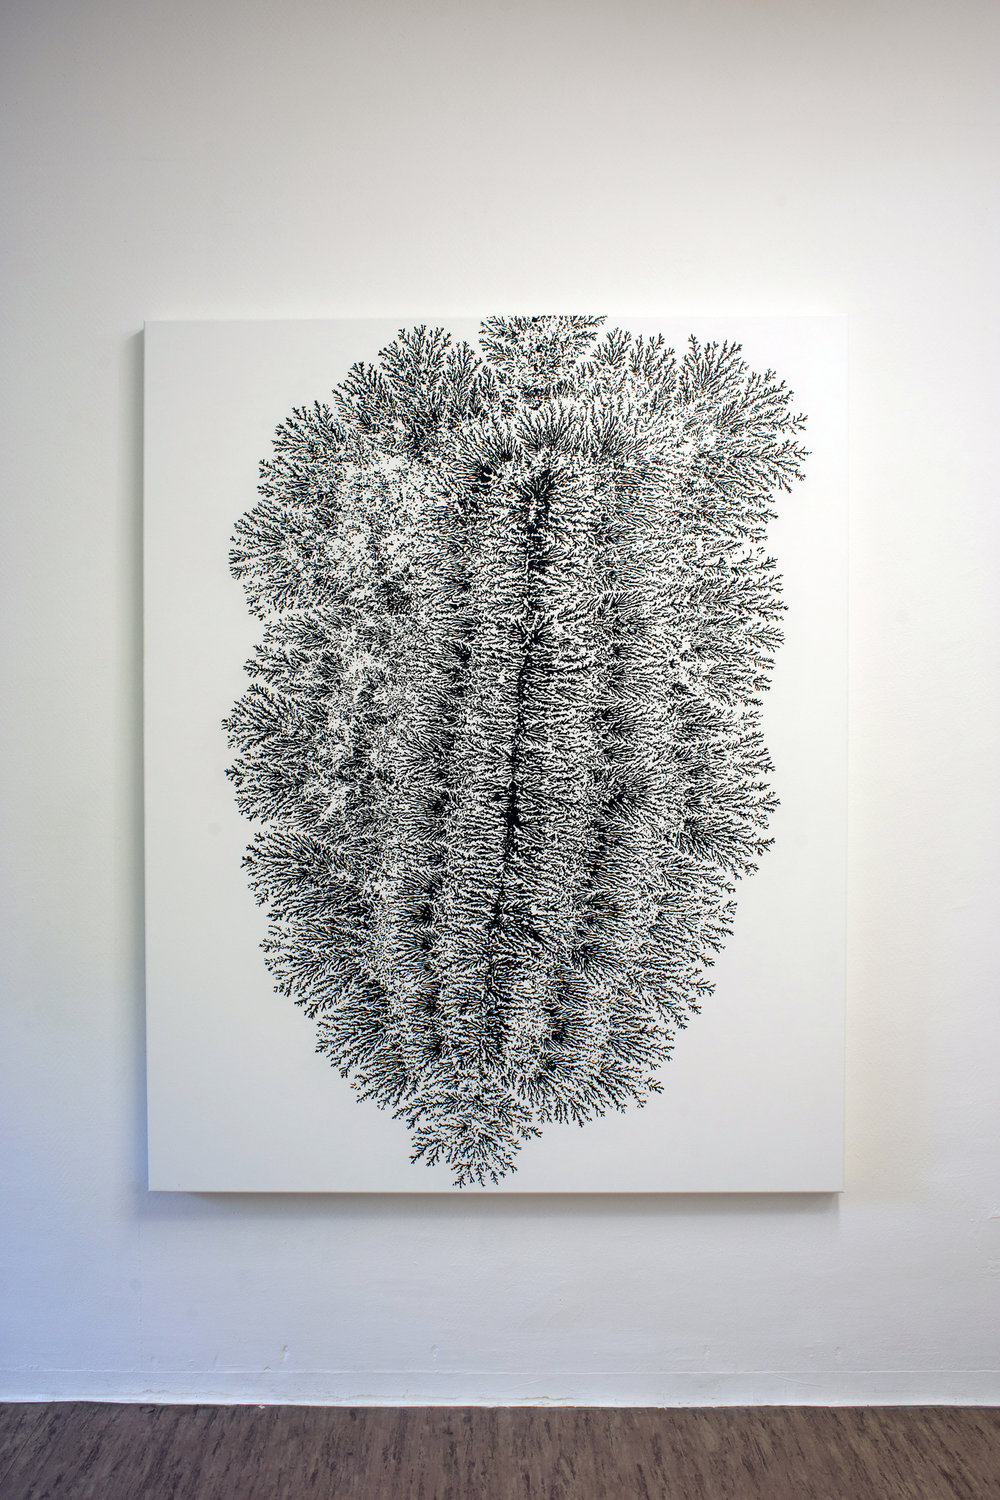 Dendrite, 2013, acrylic on canvas, 140 x 175 cm